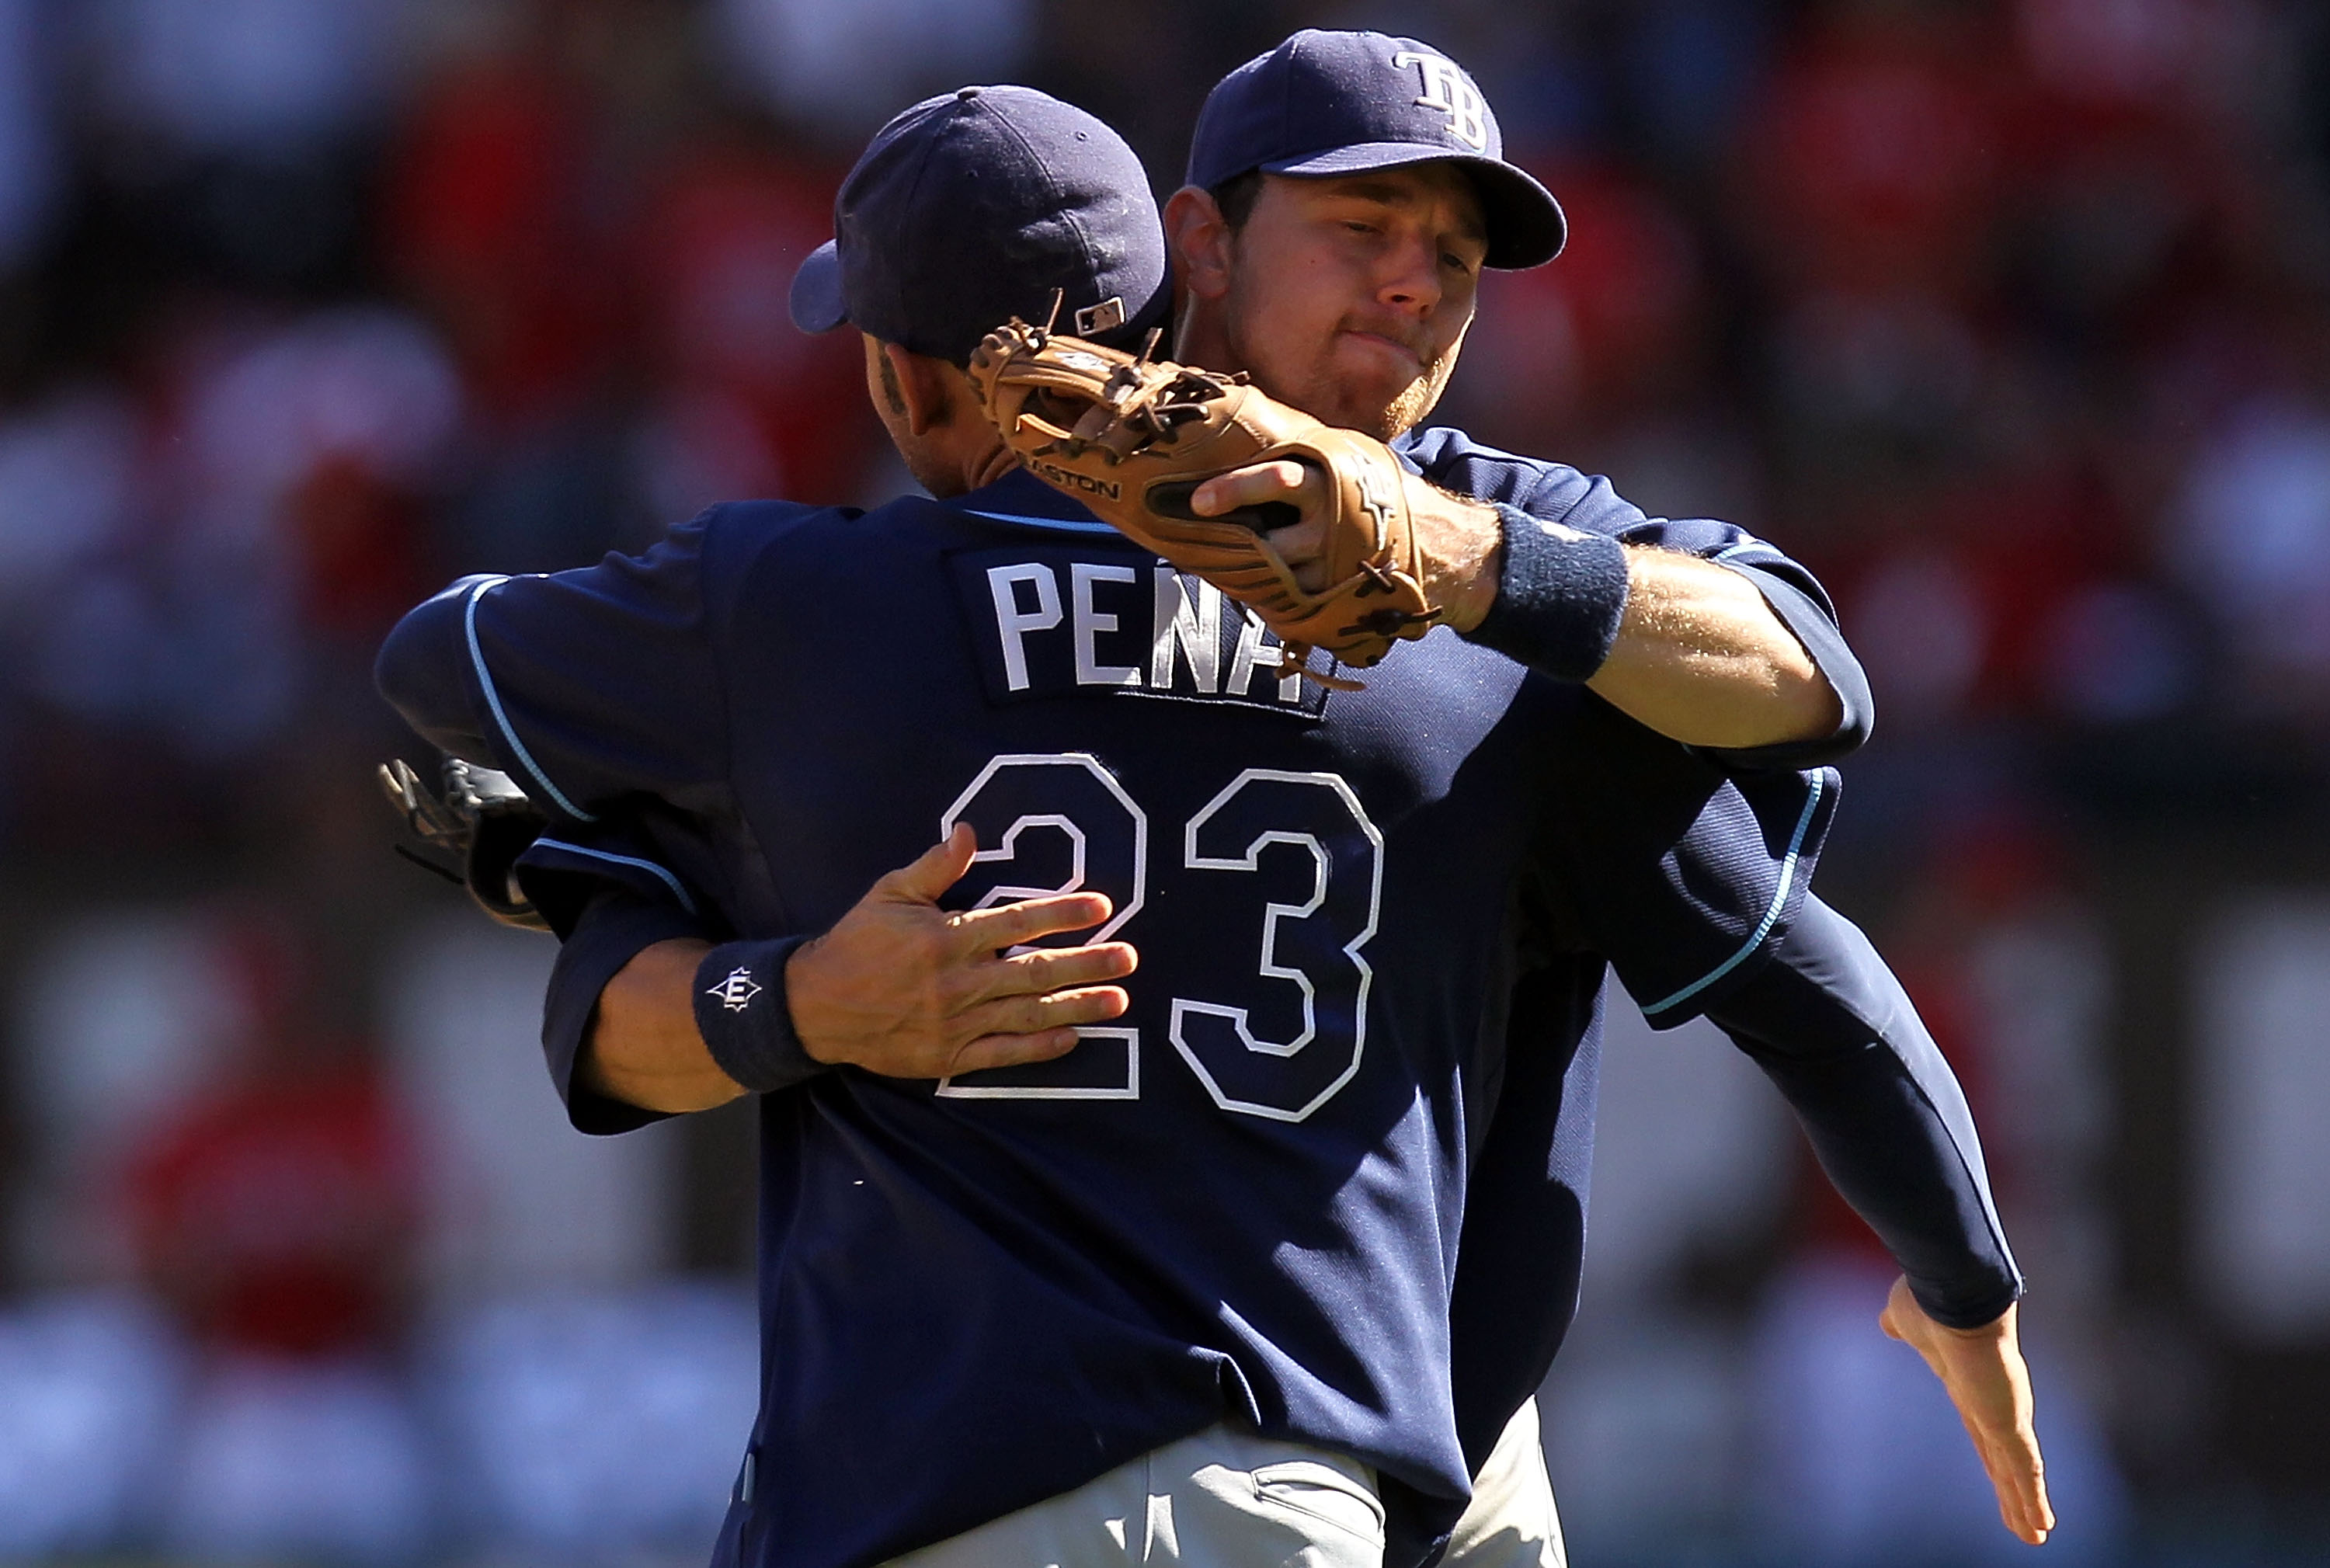 ARLINGTON, TX - OCTOBER 10:  Carlos Pena #23 hugs Ben Zobrist #18 of the Tampa Bay Rays after a 5-2 win against the Texas Rangers during game 4 of the ALDS at Rangers Ballpark in Arlington on October 10, 2010 in Arlington, Texas.  (Photo by Ronald Martine